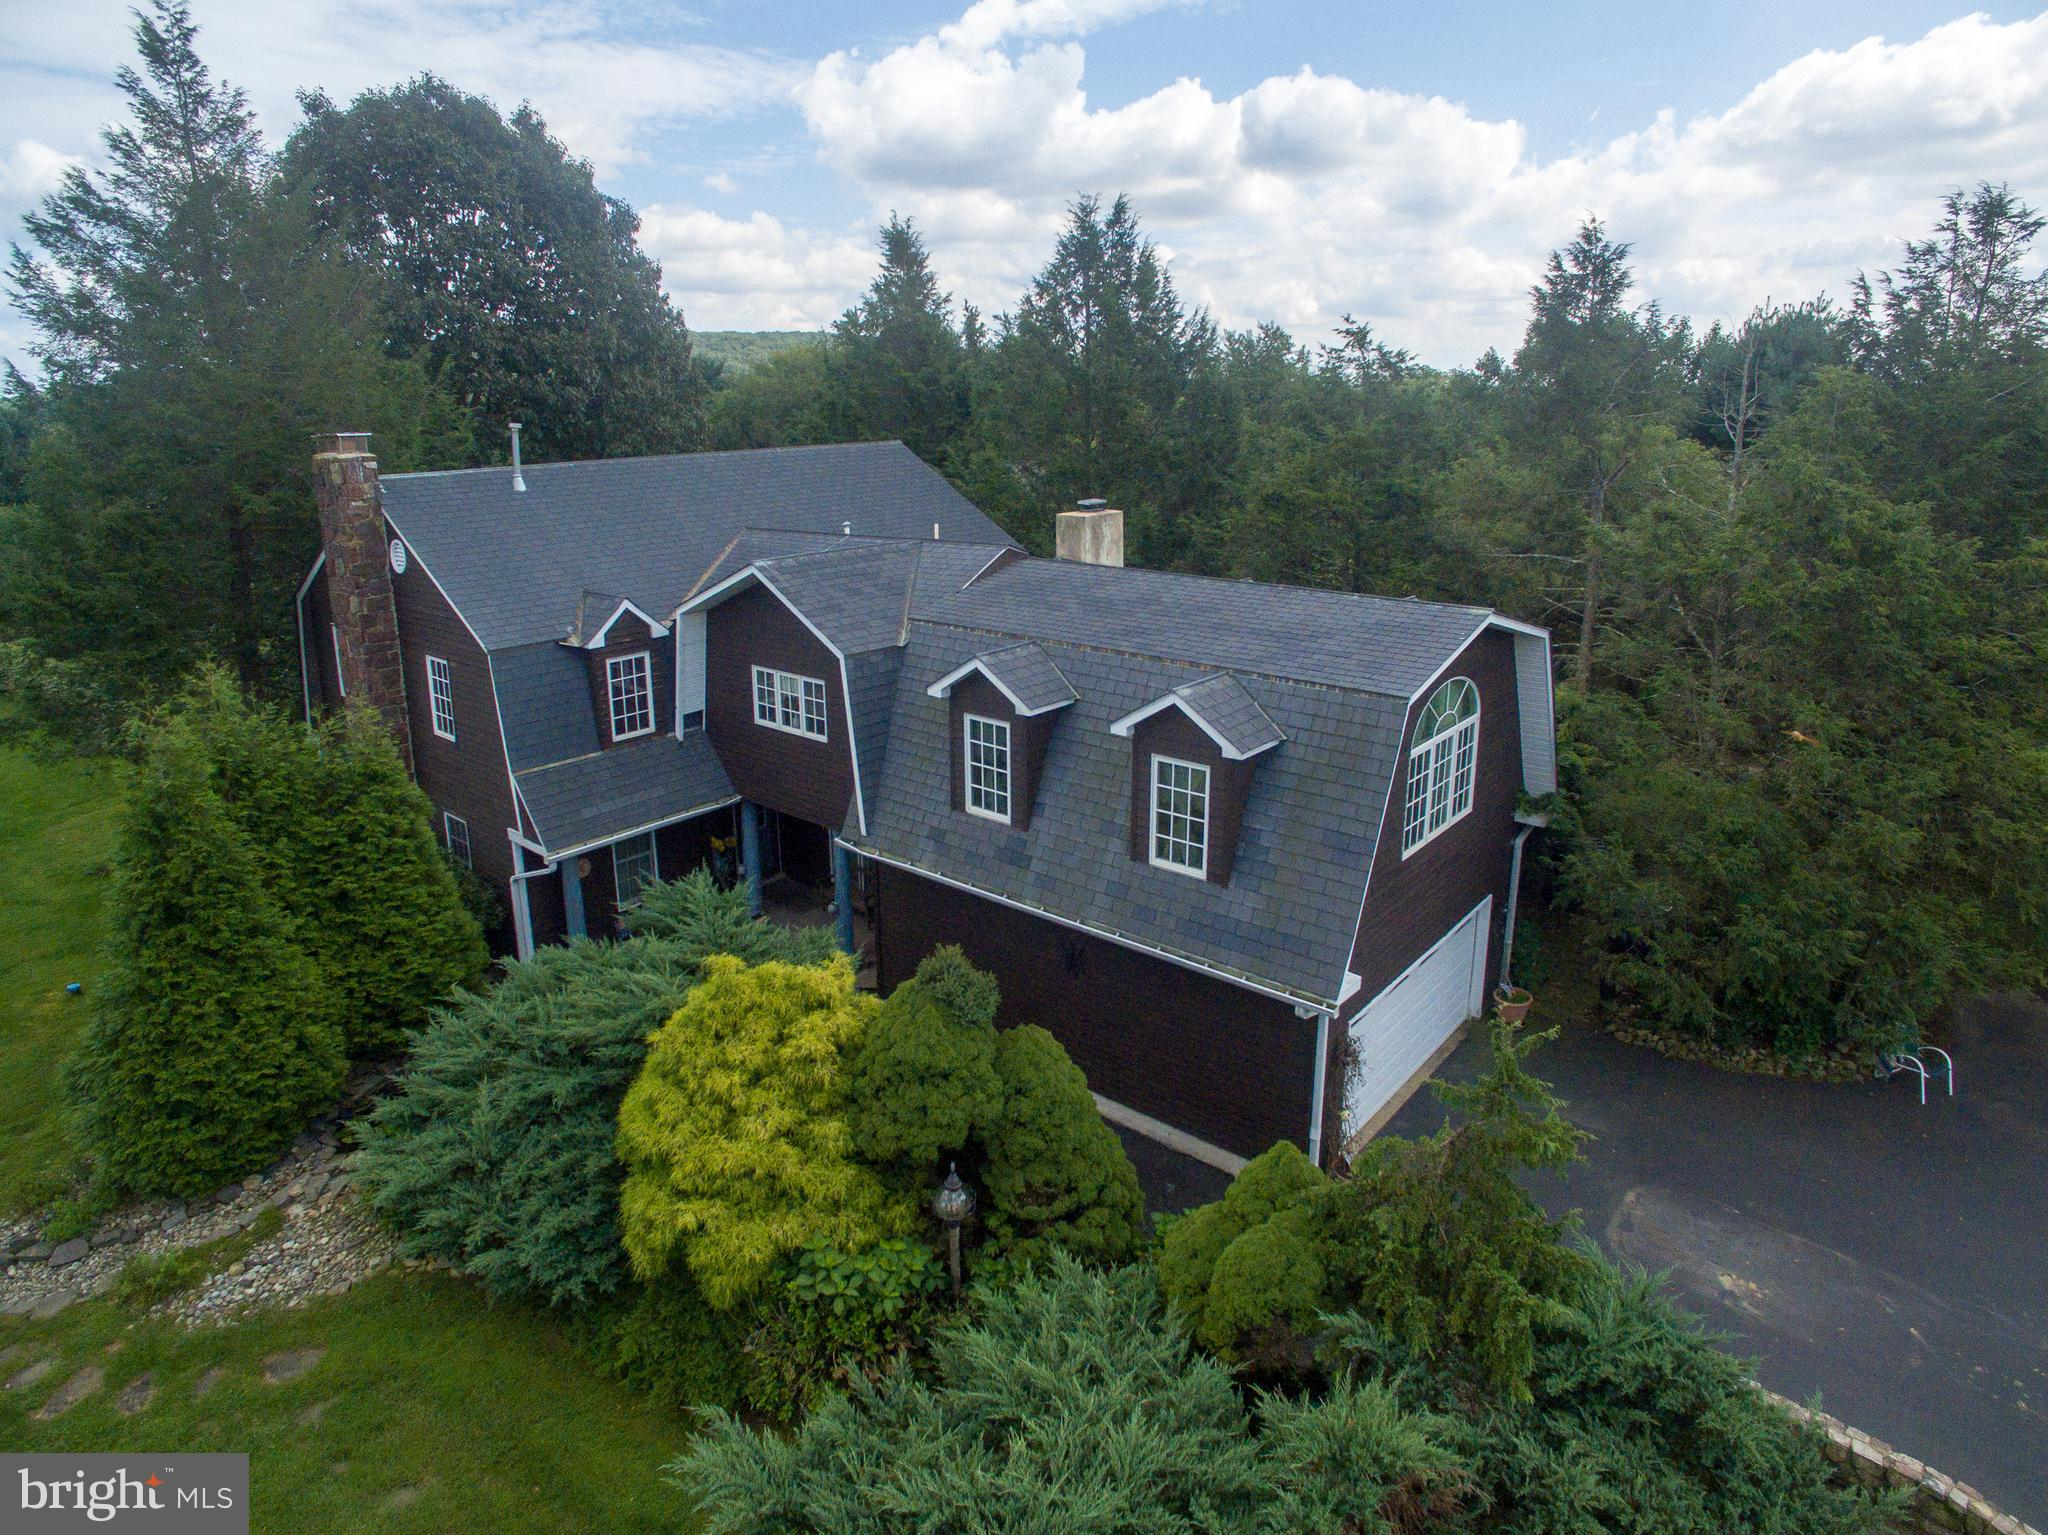 520 SUMMIT LANE, RIEGELSVILLE, PA 18077